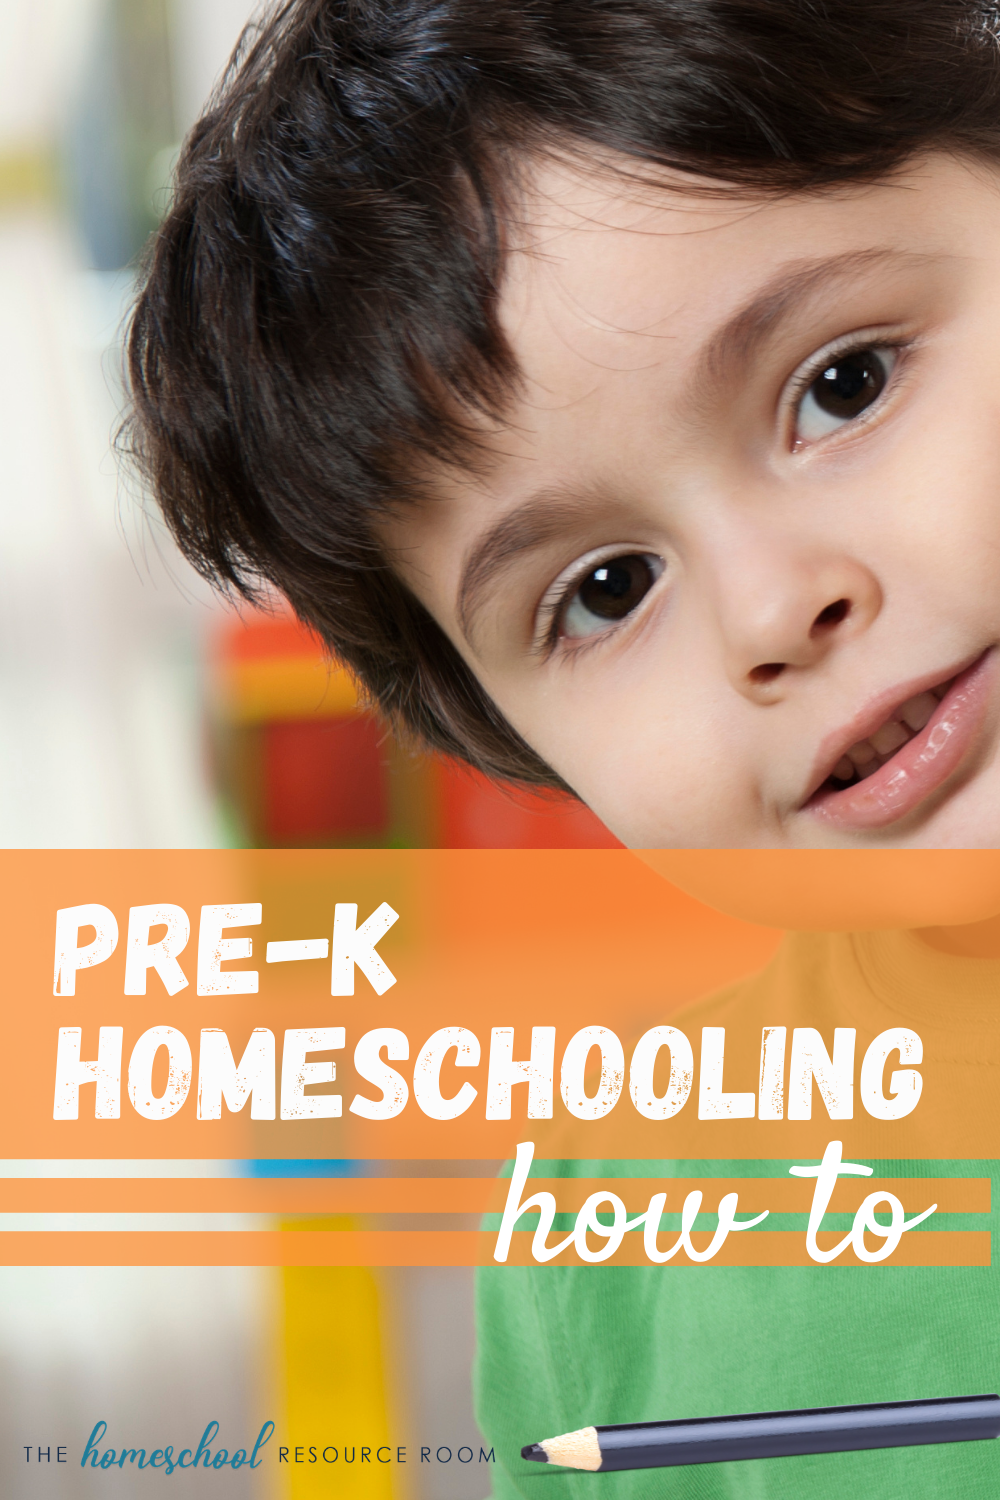 Pre K Homeschooling: Tips for teaching the littlest learners at home.